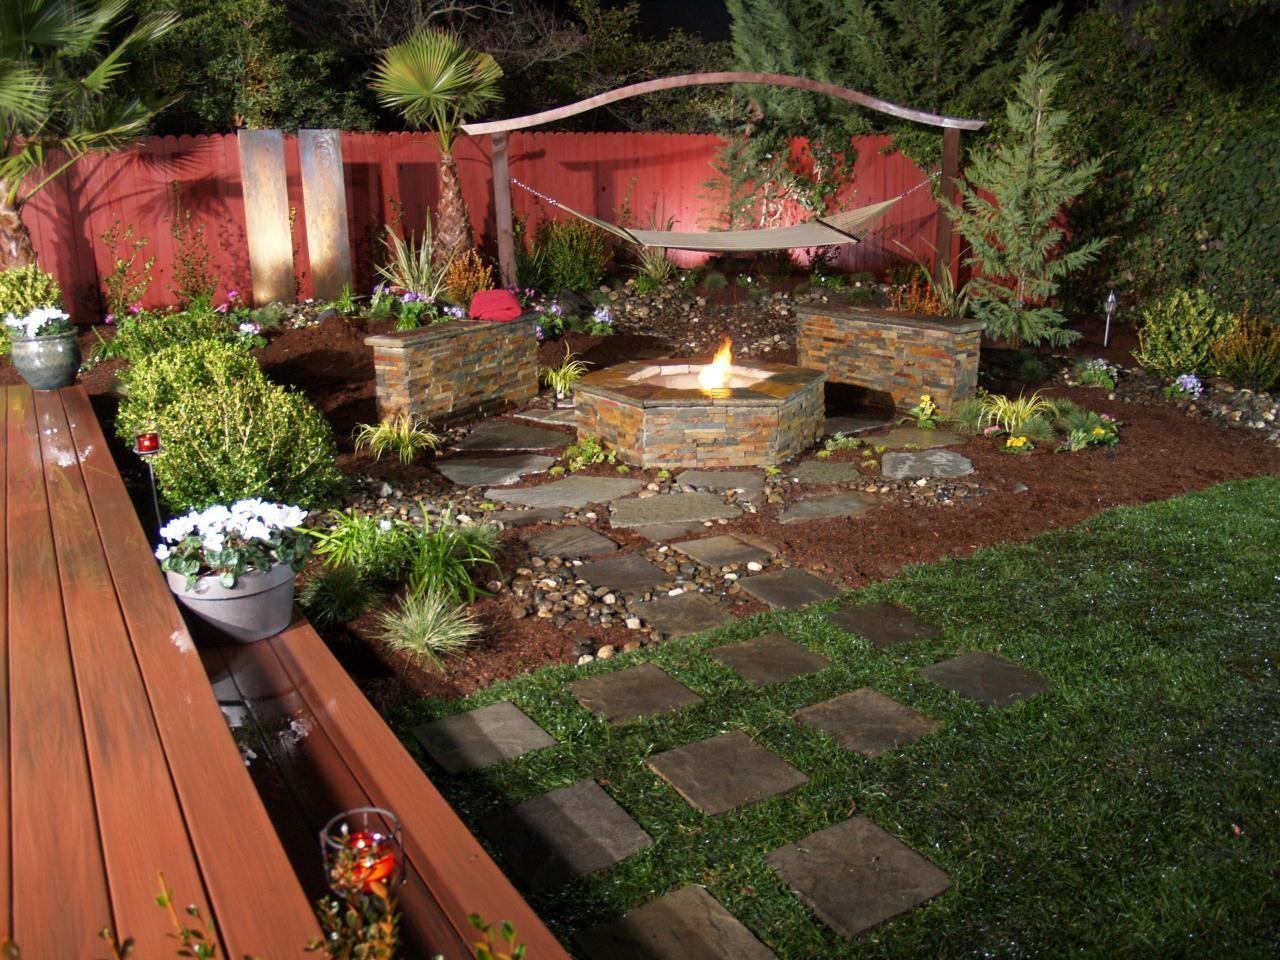 Outdoor Fireplaces Fire Pits Diy Shed Pergola